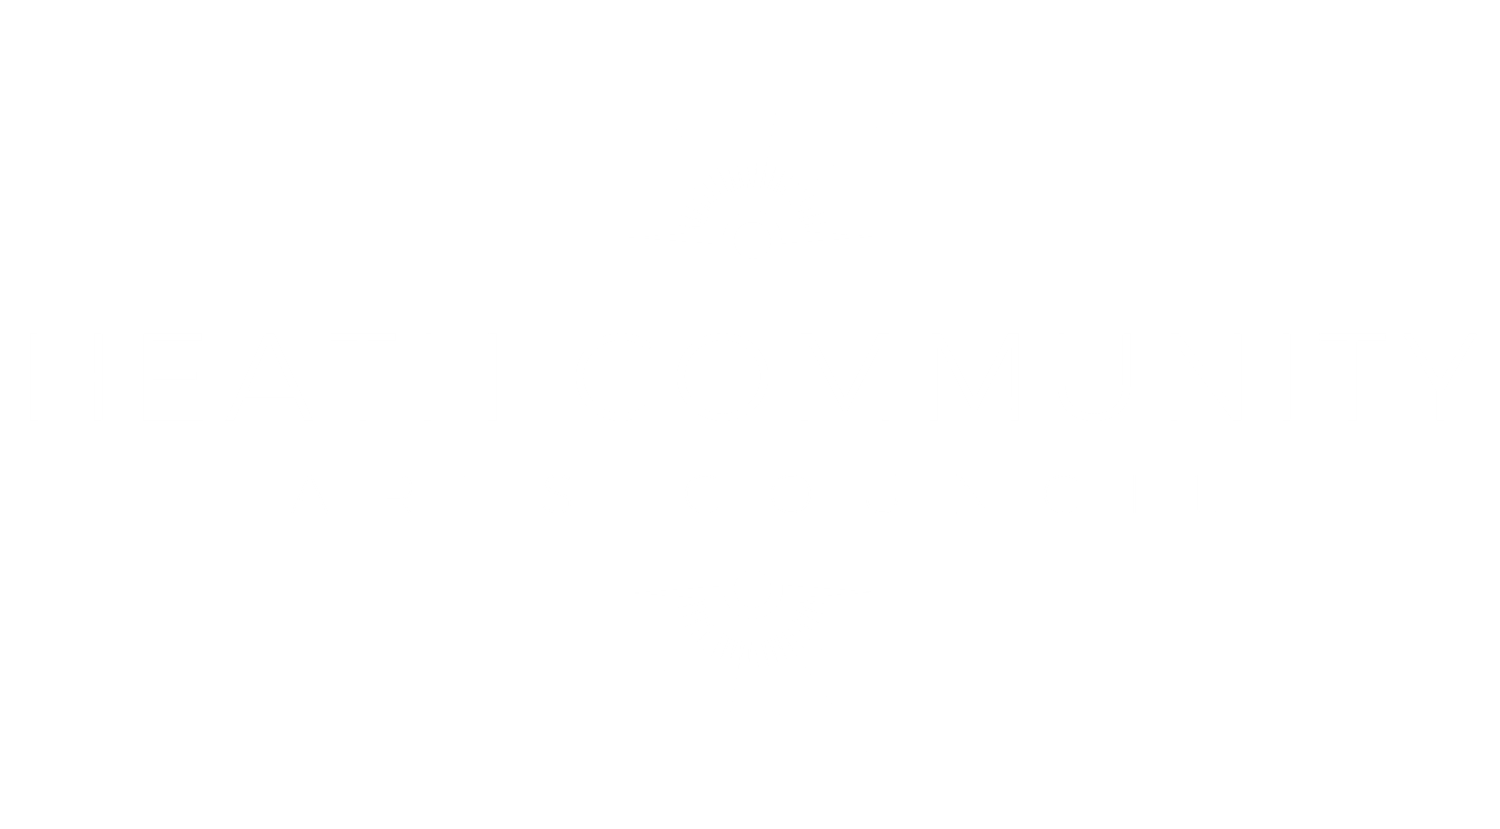 Heath Community Arts Council